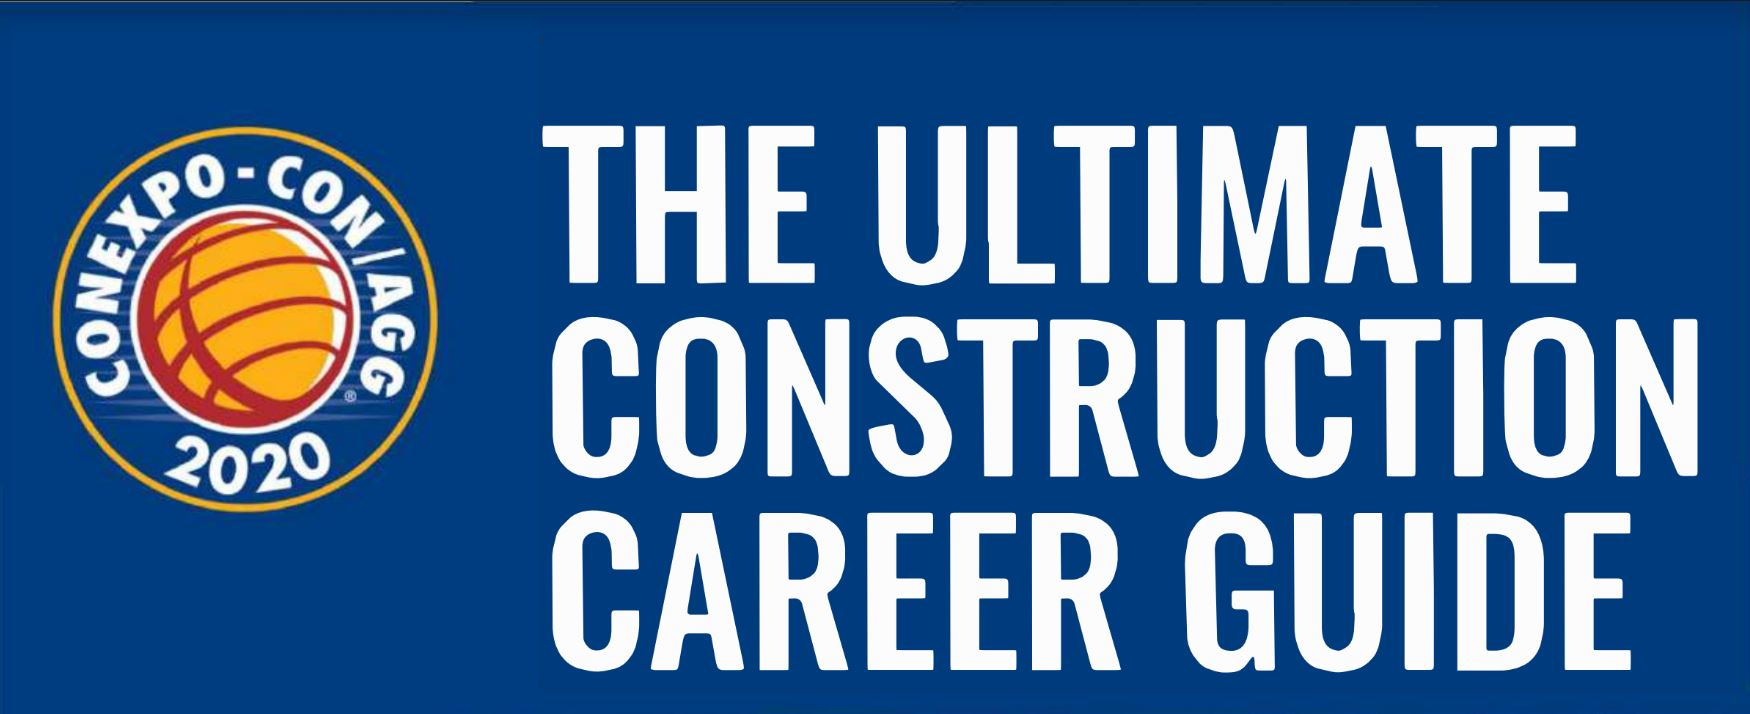 The Ultimate Construction Career Guide.JPG